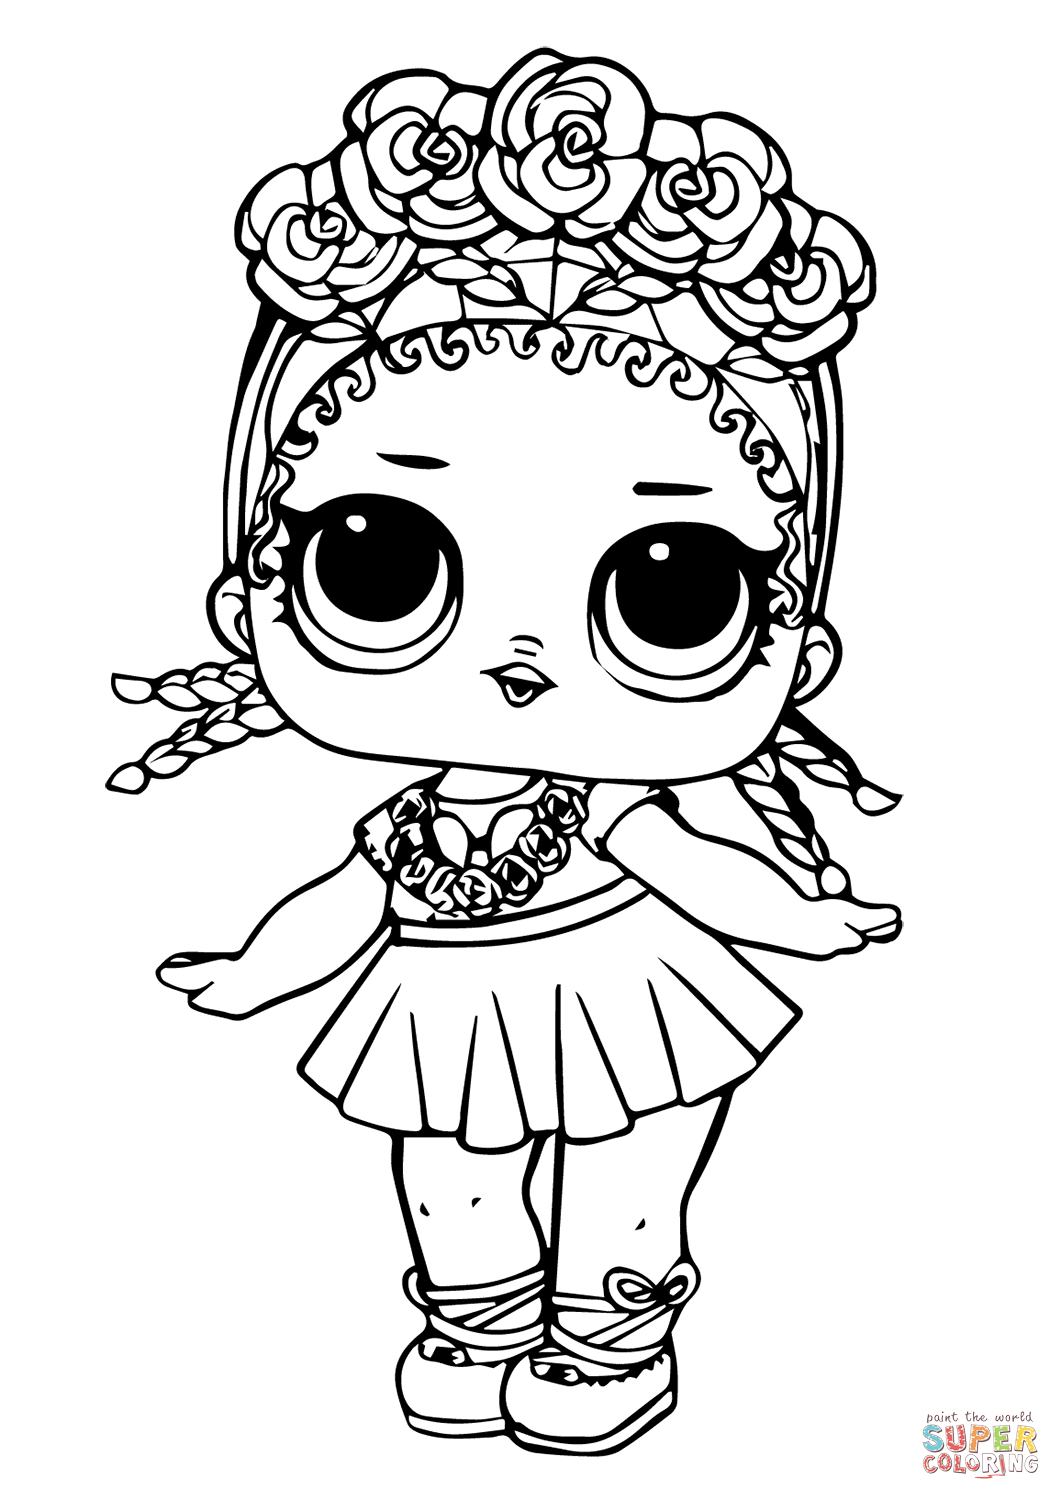 Lol Doll Coconut Q T Super Coloring Unicorn Coloring Pages Cartoon Coloring Pages Cute Coloring Pages